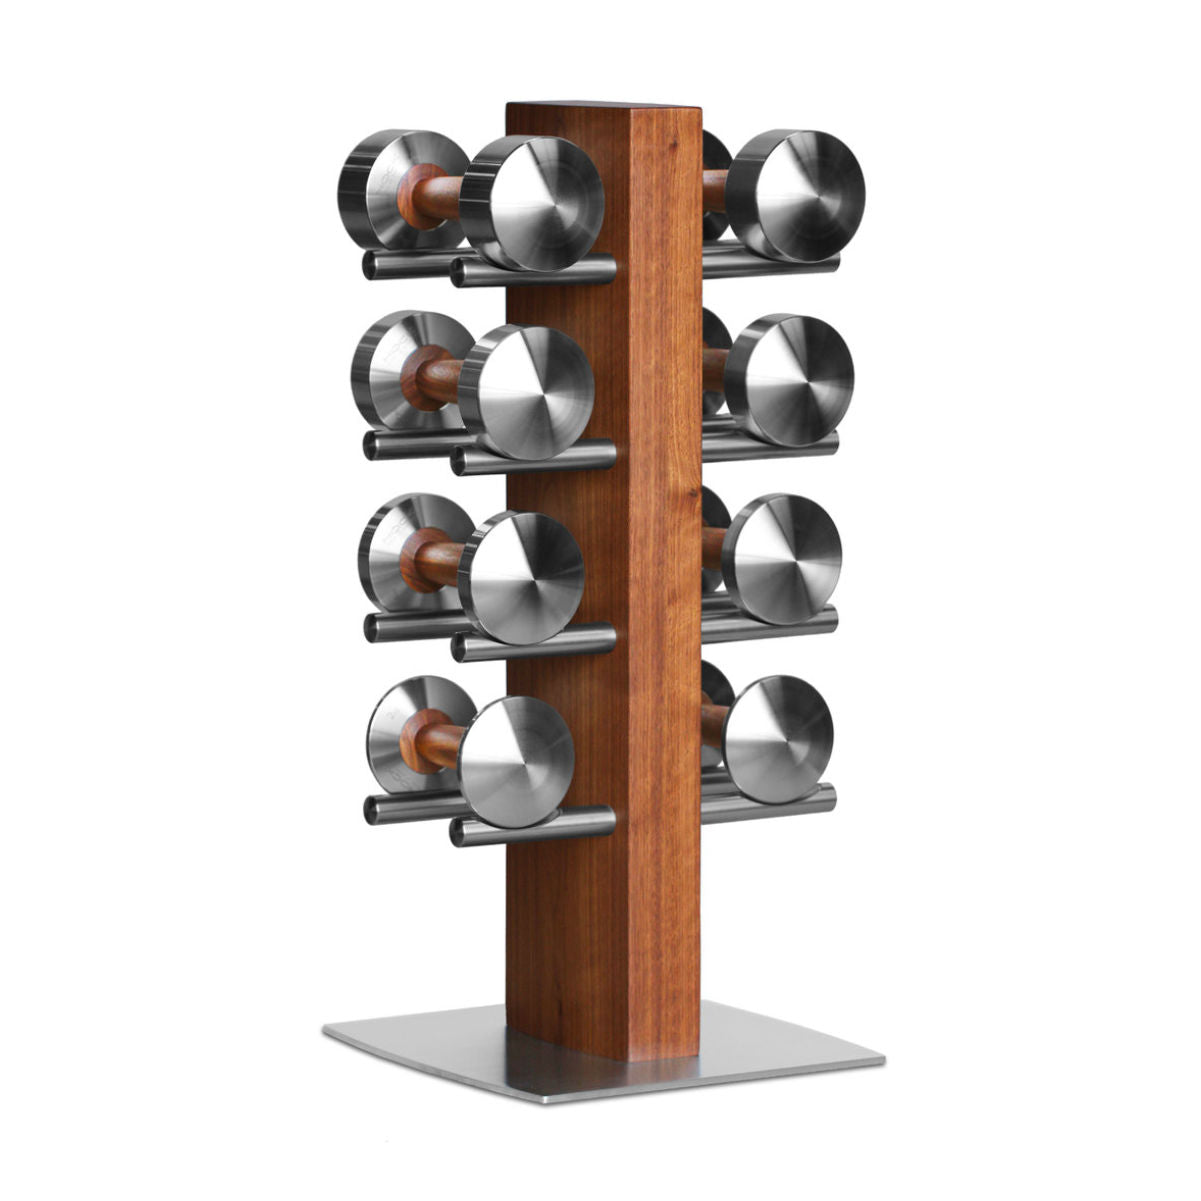 HOCK Design DISKUS SUPERTOWER luxury dumbells set, 2-8kg